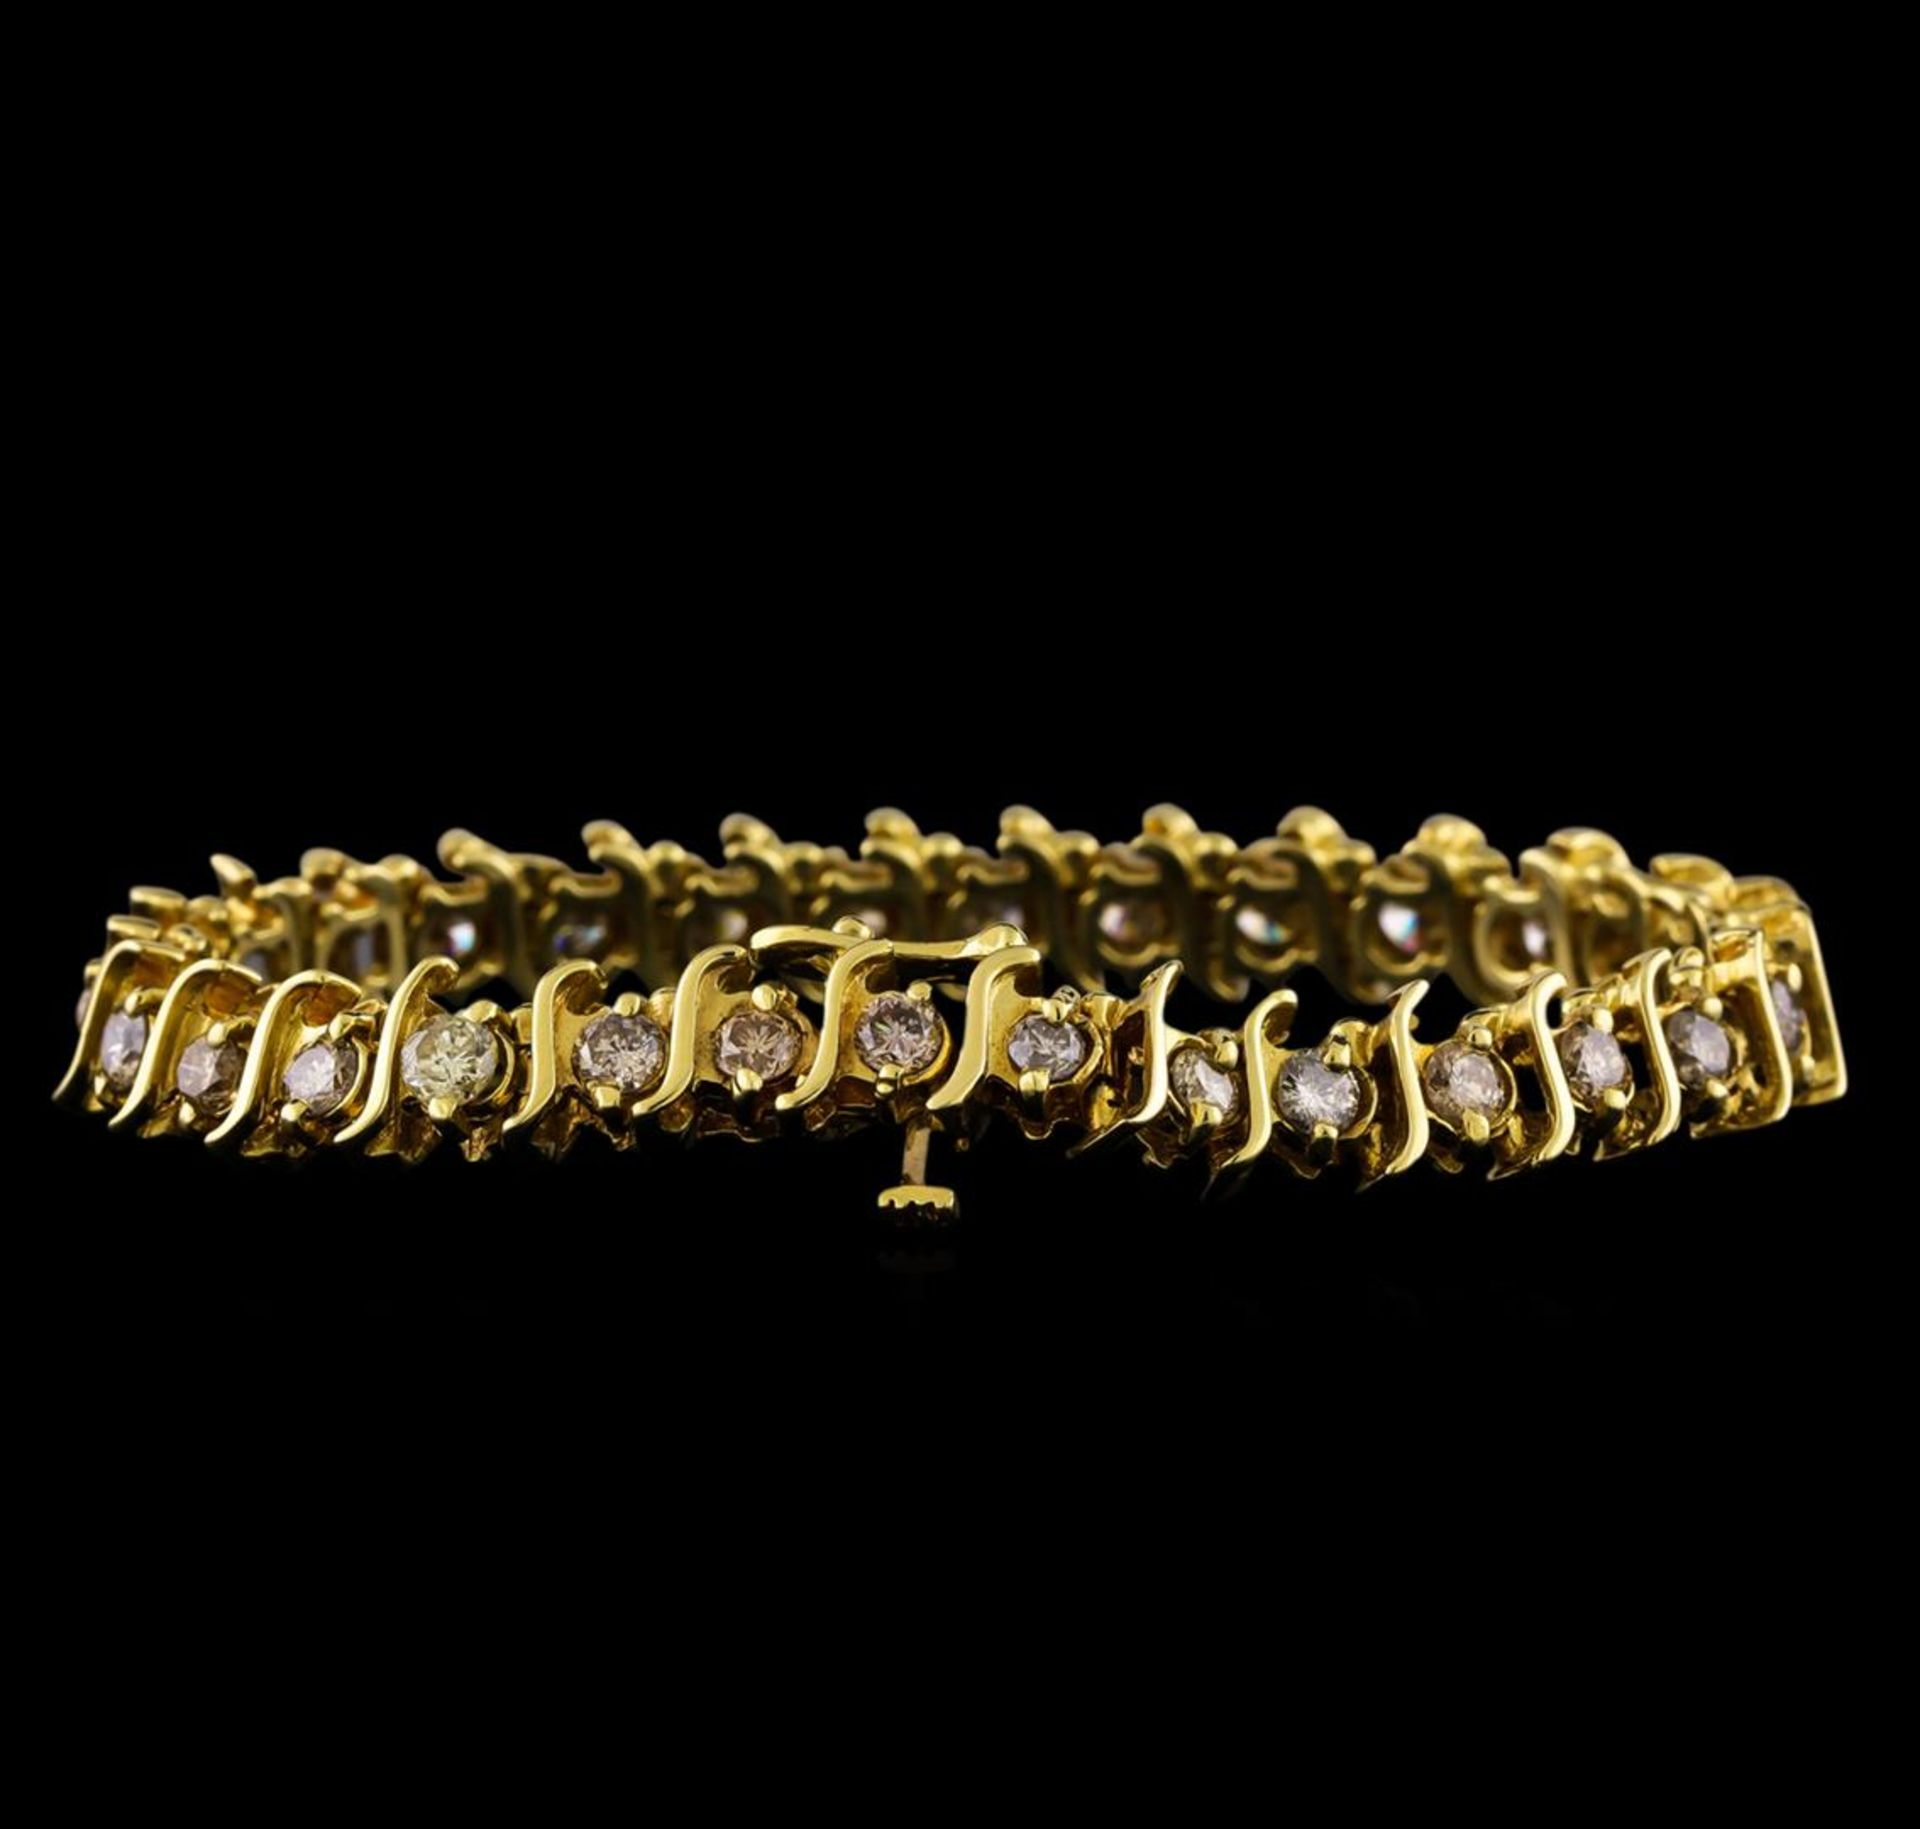 4.85 ctw Diamond Bracelet - 14KT Yellow Gold - Image 2 of 4